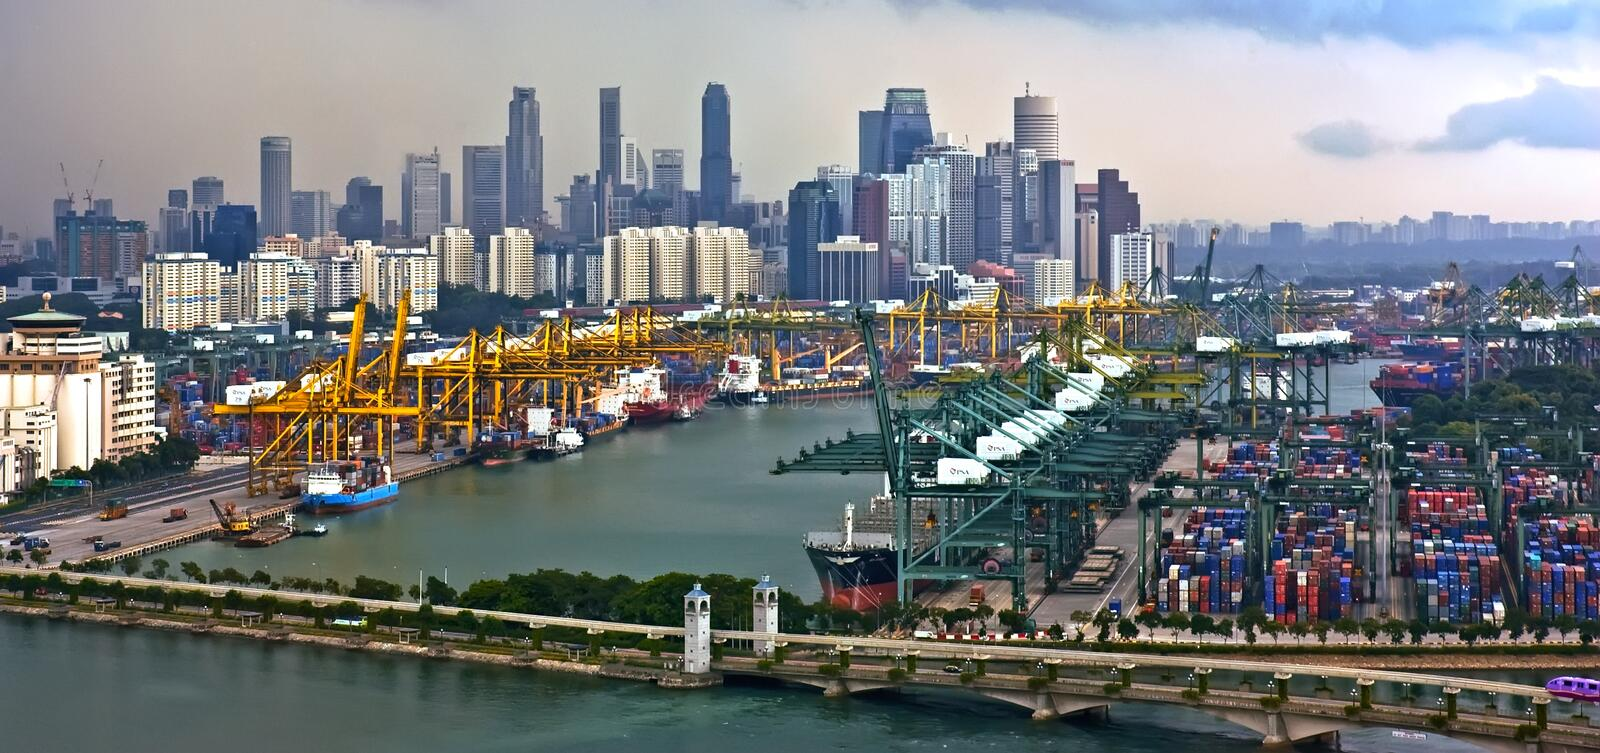 Aeriel view of busy modern industrial port town royalty free stock images